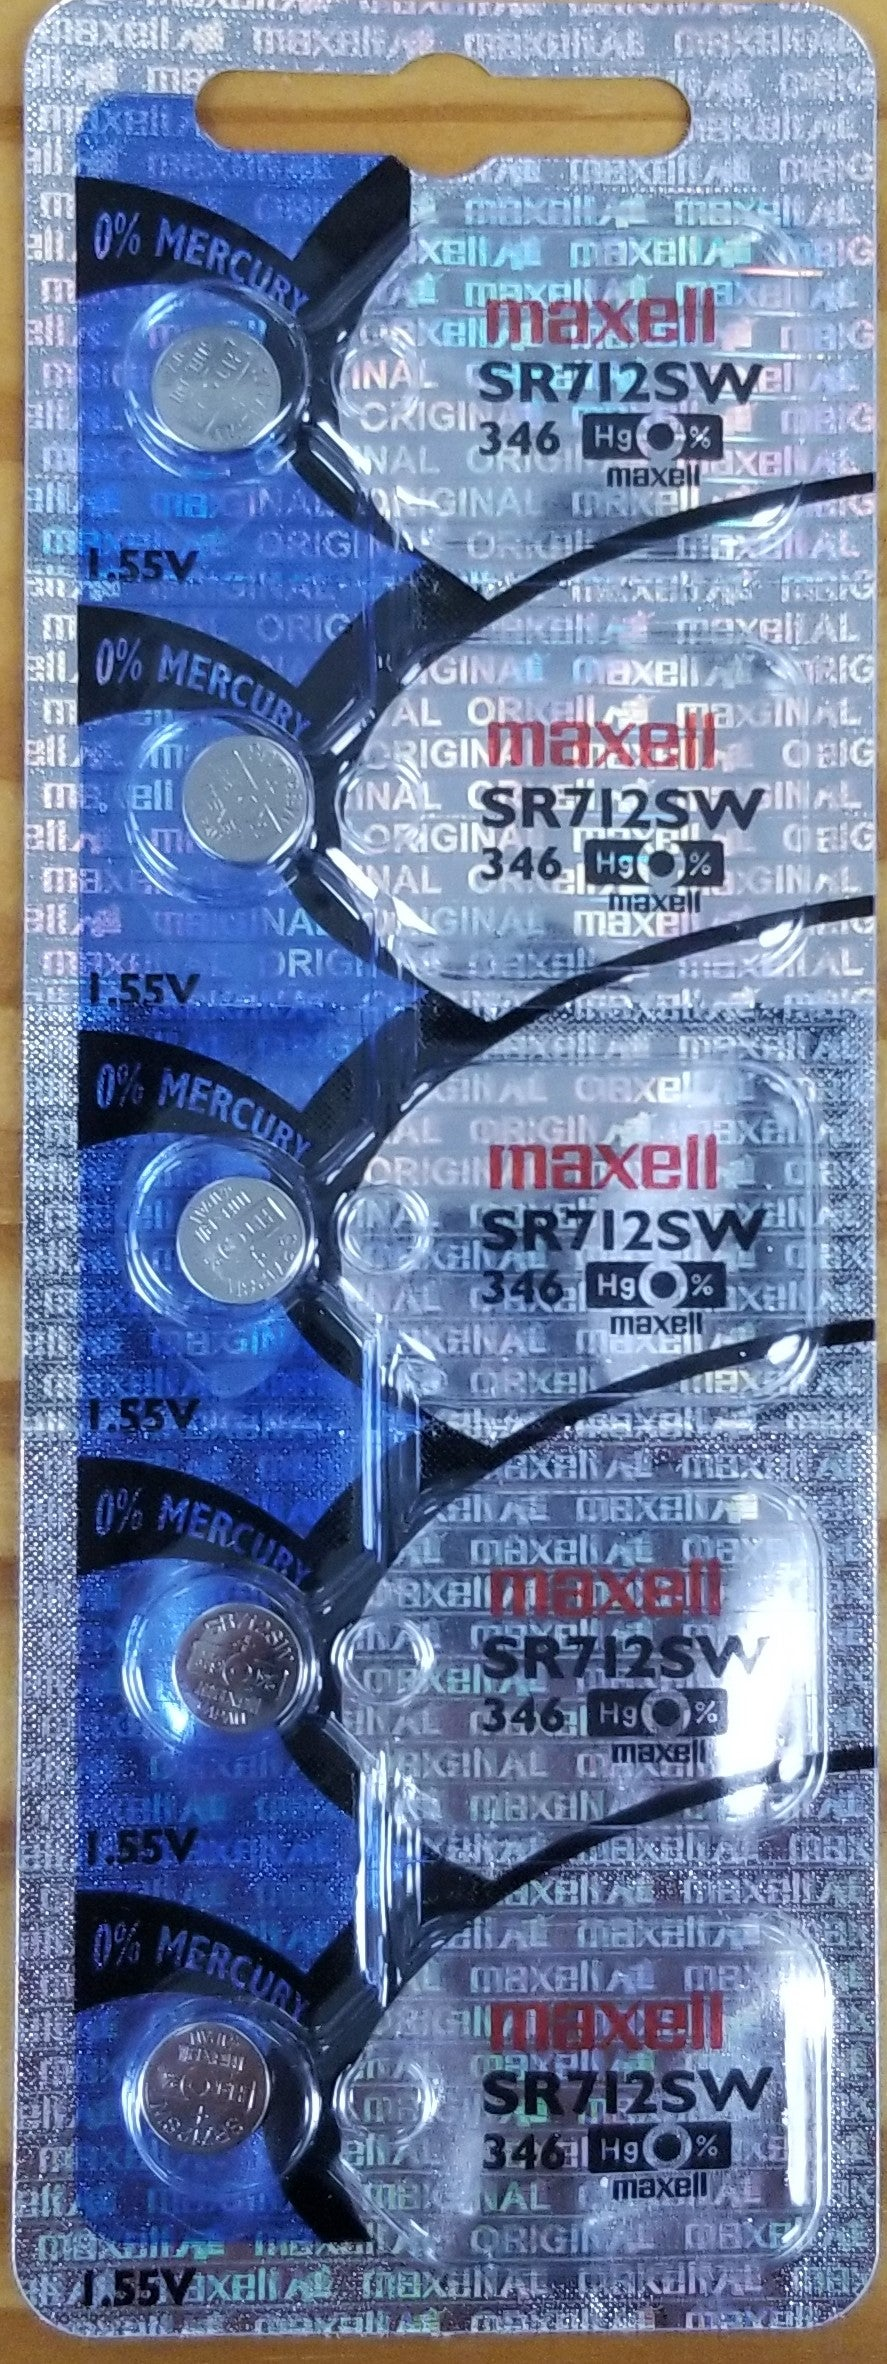 Maxell #346 SR712SW 1.55v Silver Oxide Battery - Tear Strip of 5